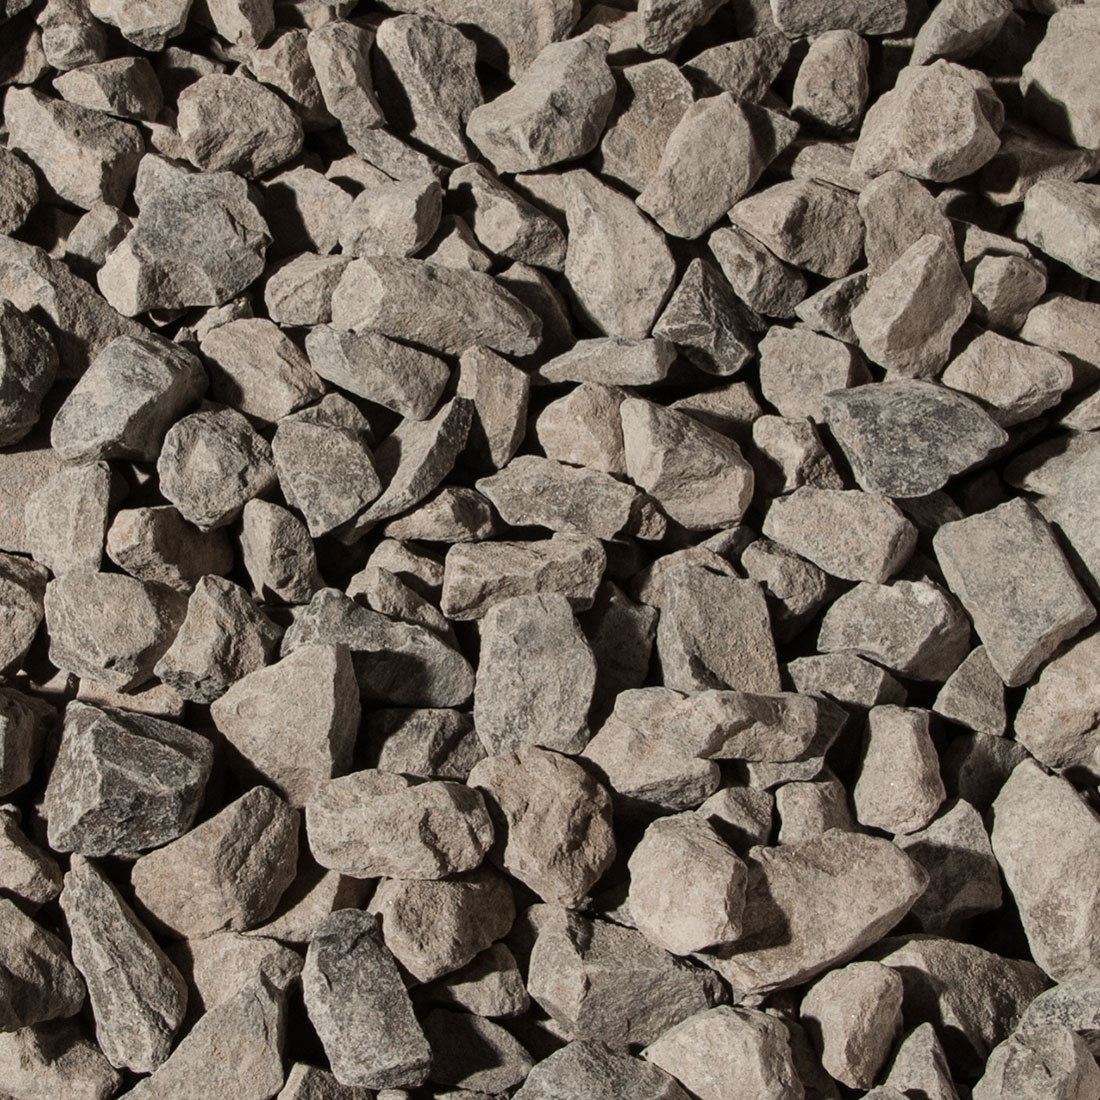 Clear Gravel construction aggregate